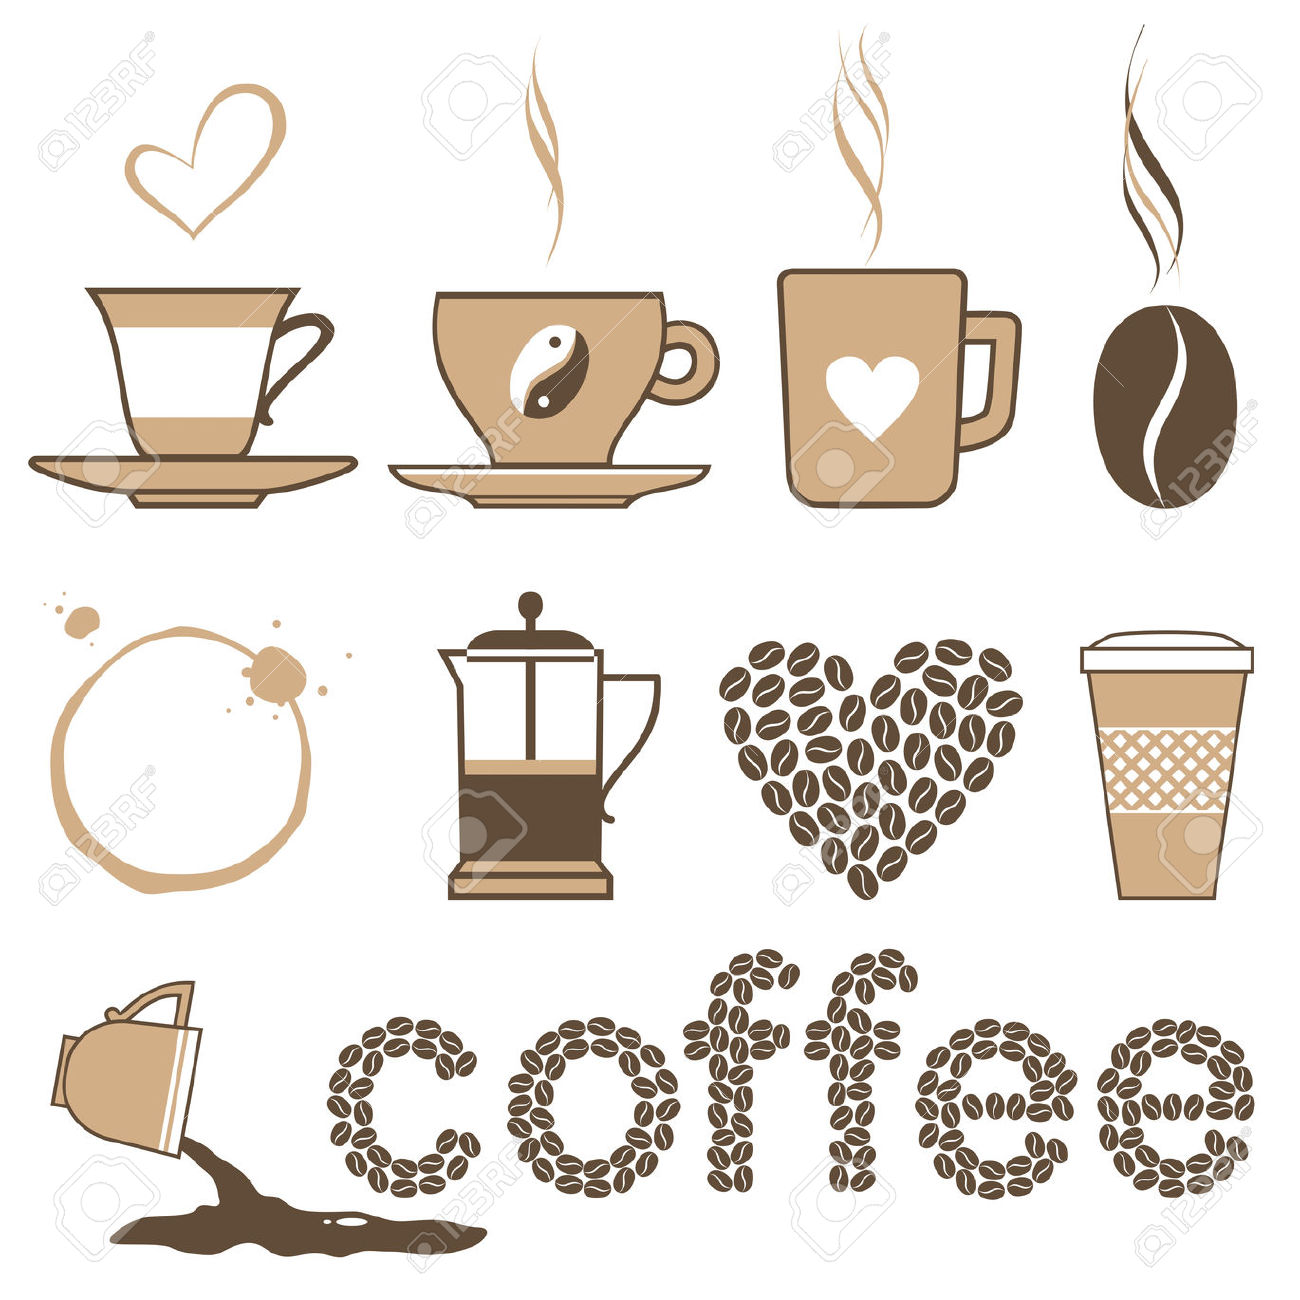 Coffee clipart vintage coffee Clipart Cup  Cup of